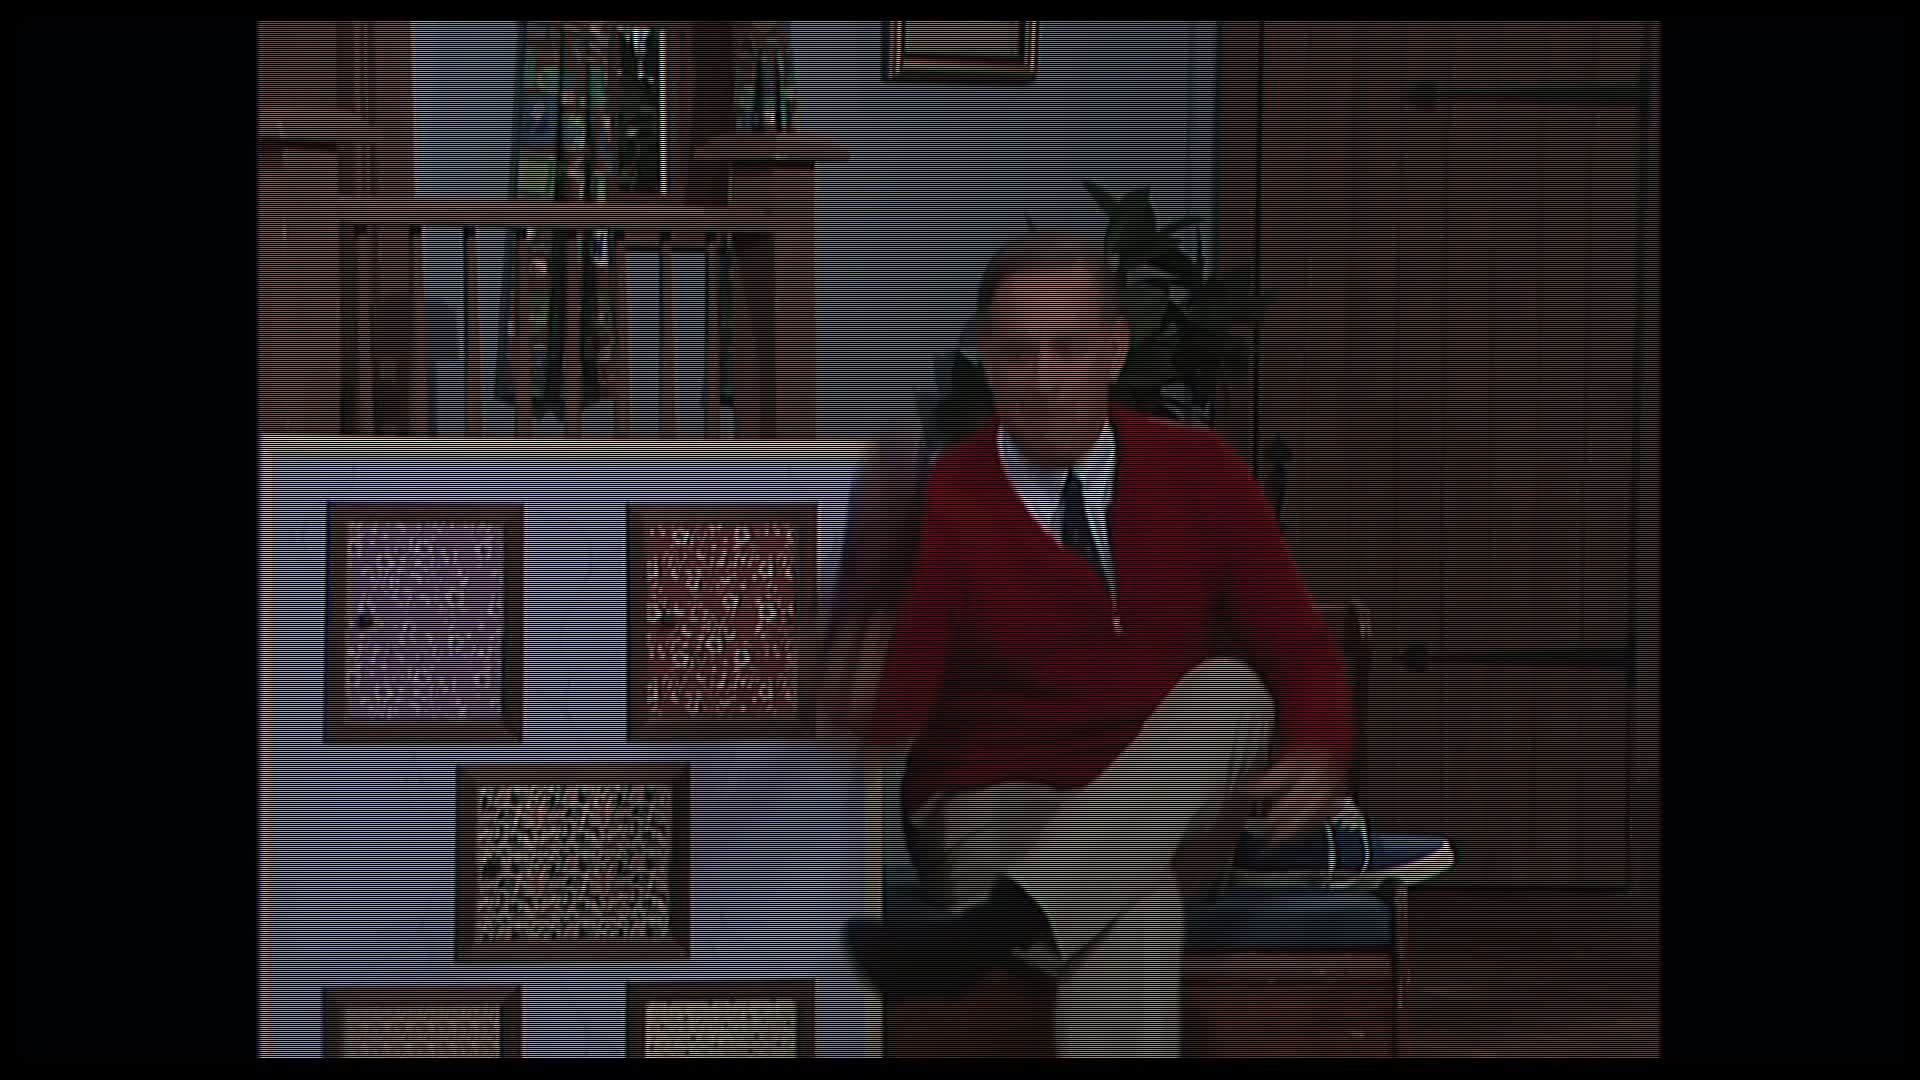 Watch First Look At Tom Hanks As Mr Rogers In New Movie Trailer Tom Hanks New Movies Movie Trailers